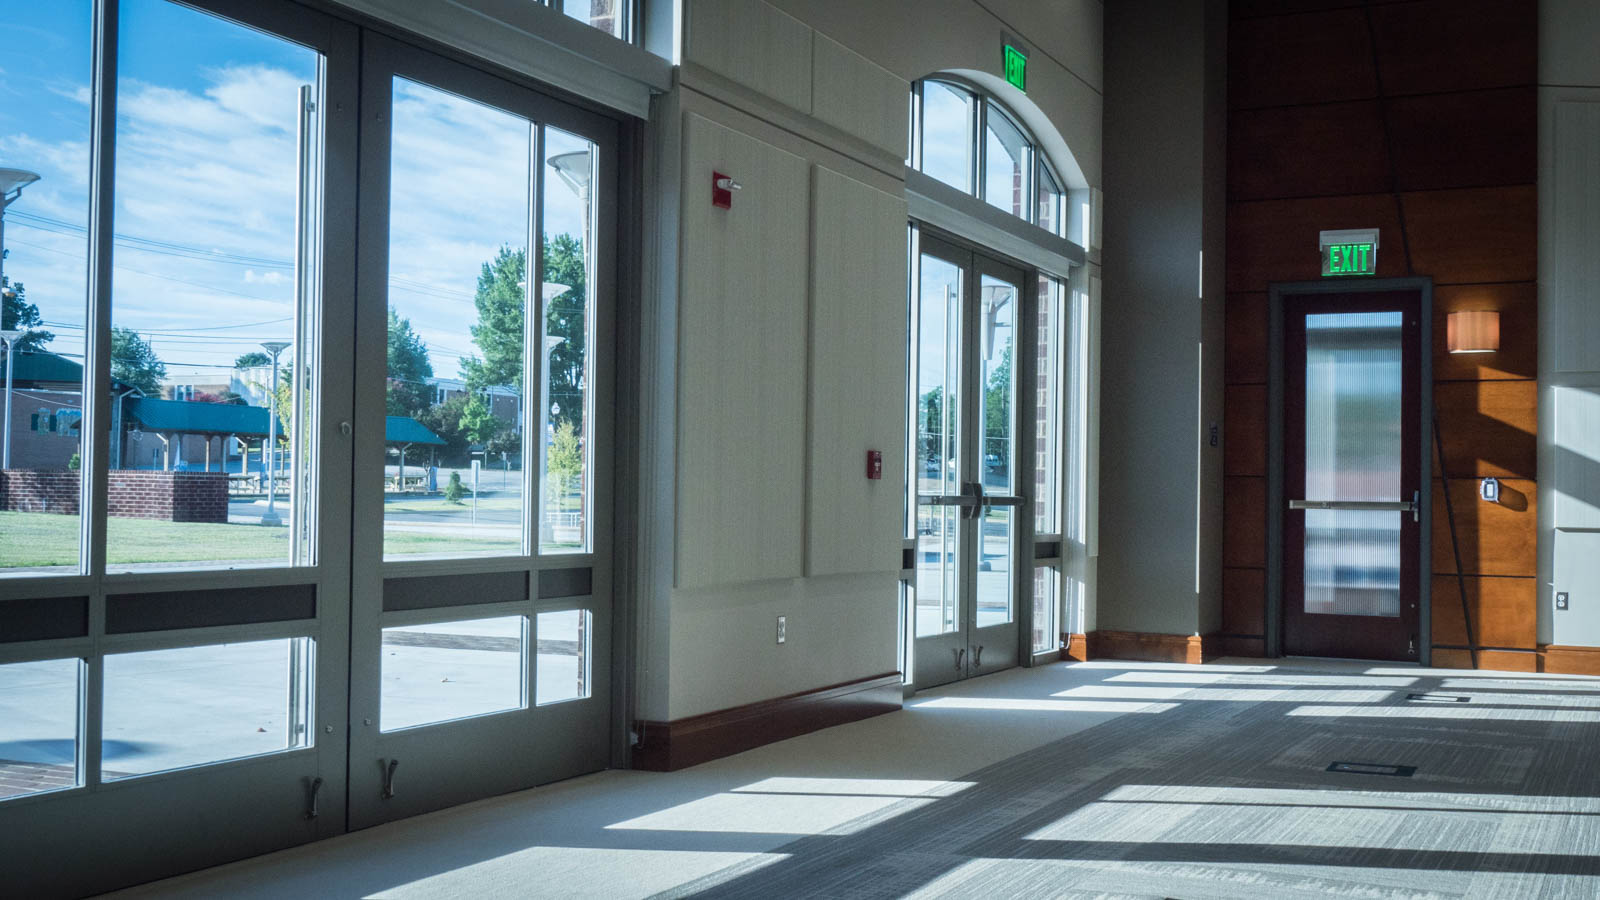 The doors leading from the Lecture Hall/Grand Hall to the terrace are large enough for a car to go through.